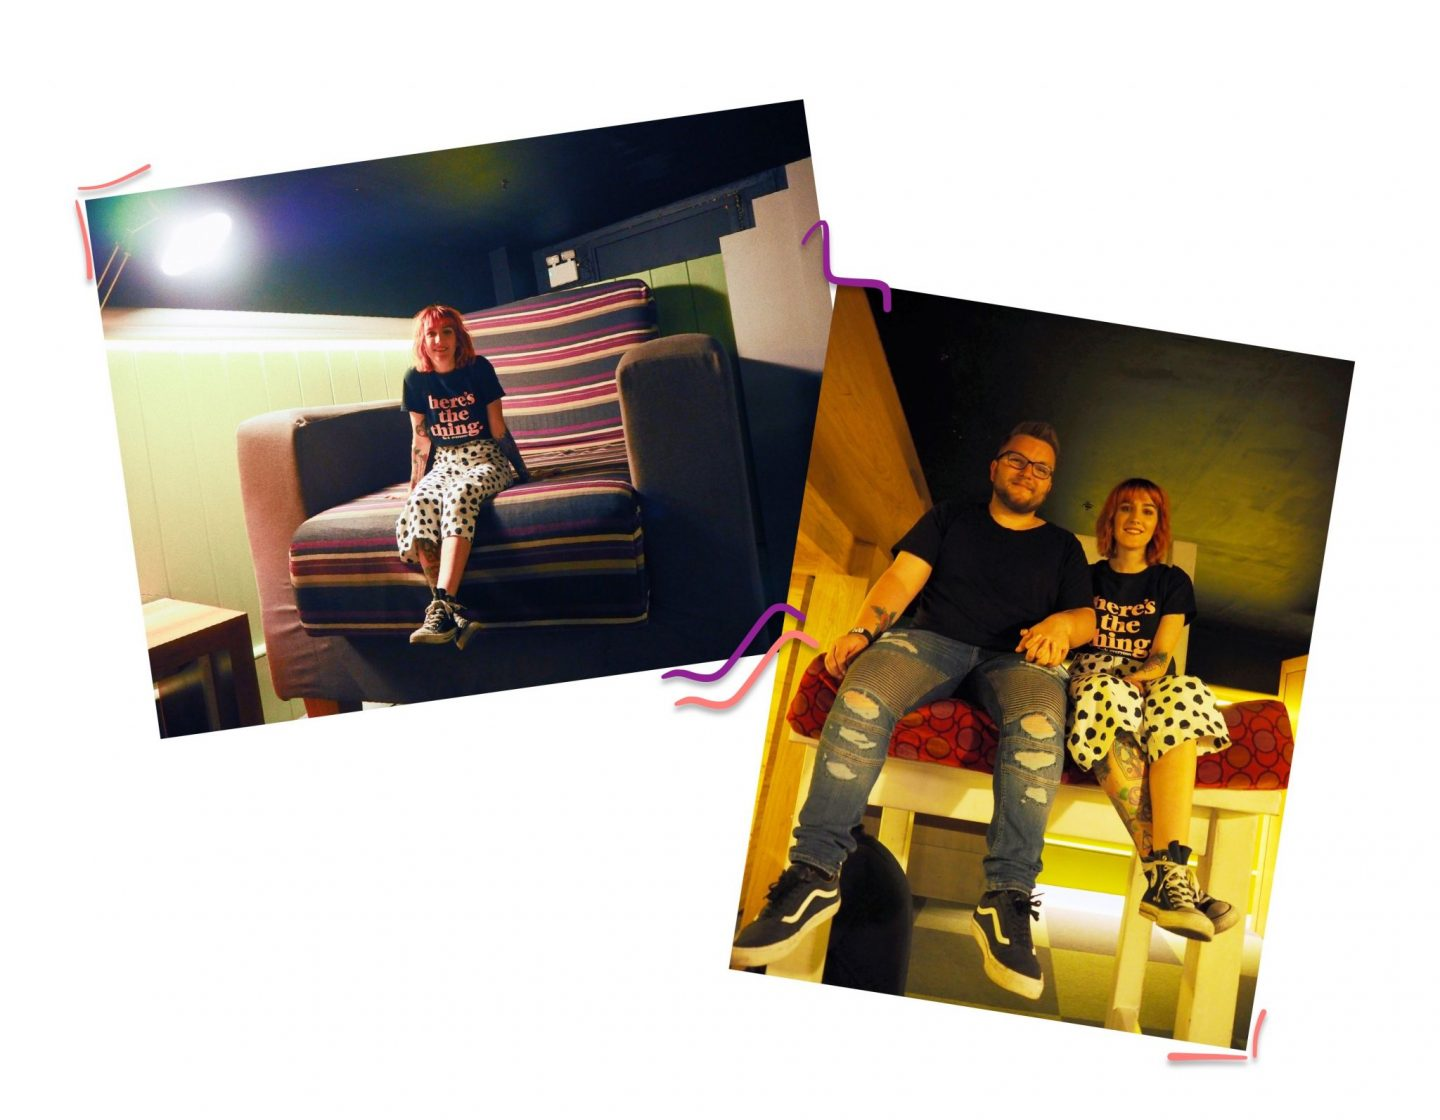 Dublin dairies; my favourite murder & leprechaun museum - large chair selfie collage